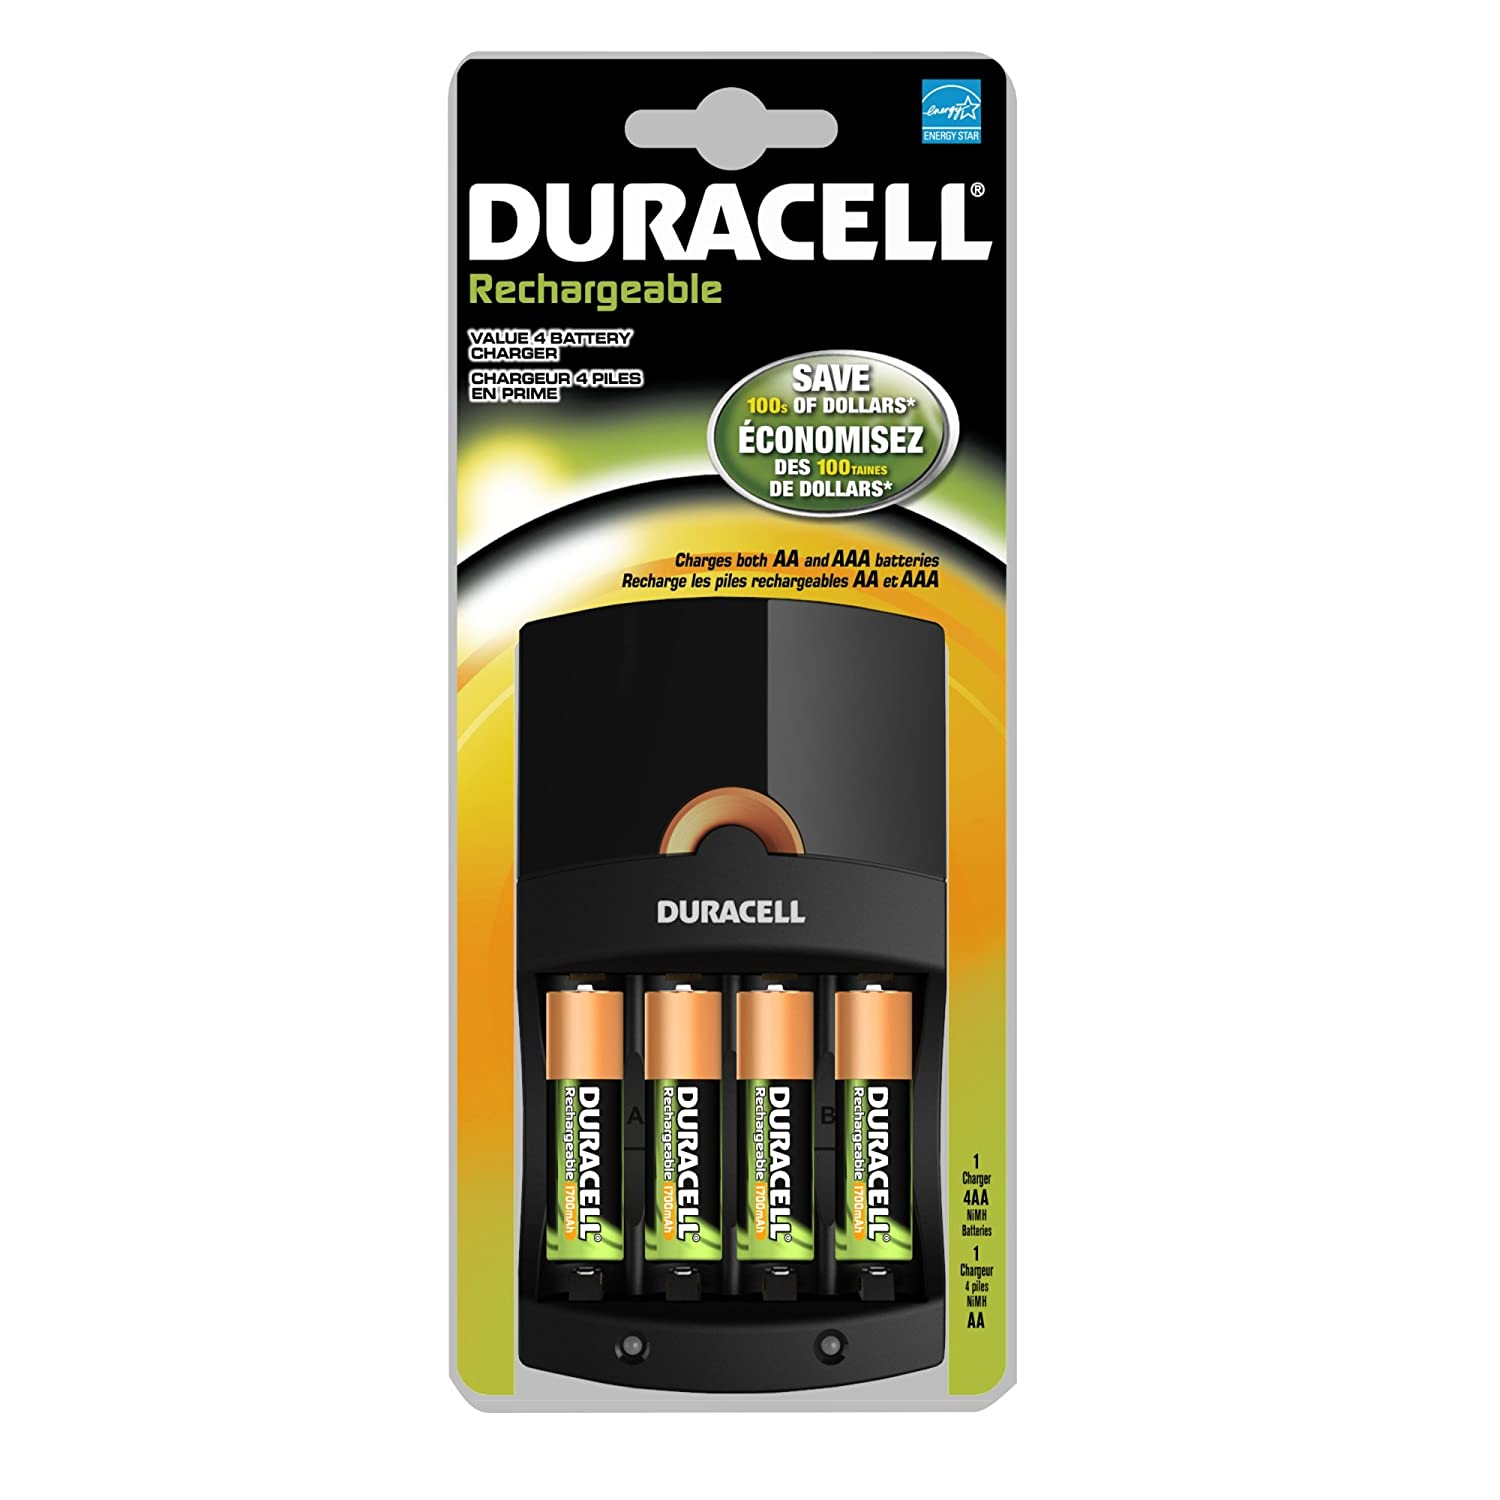 Amazon.com: Duracell Value Cargador con 4 pilas AA ...